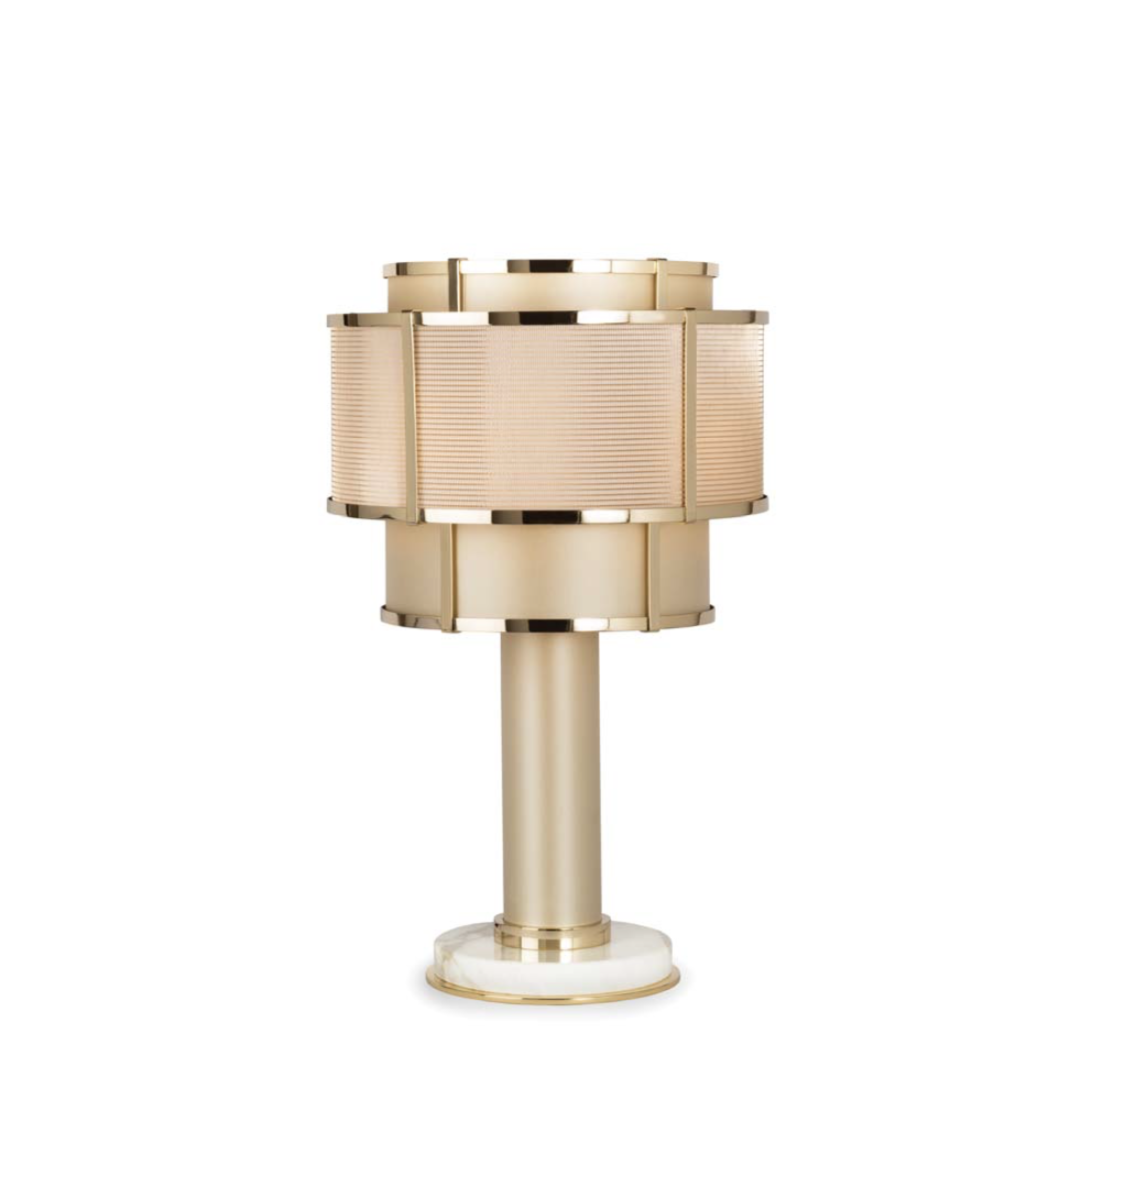 Officina Luce Nest table lamp in polished gold finish via Masha Shapiro Agency UK.jpg